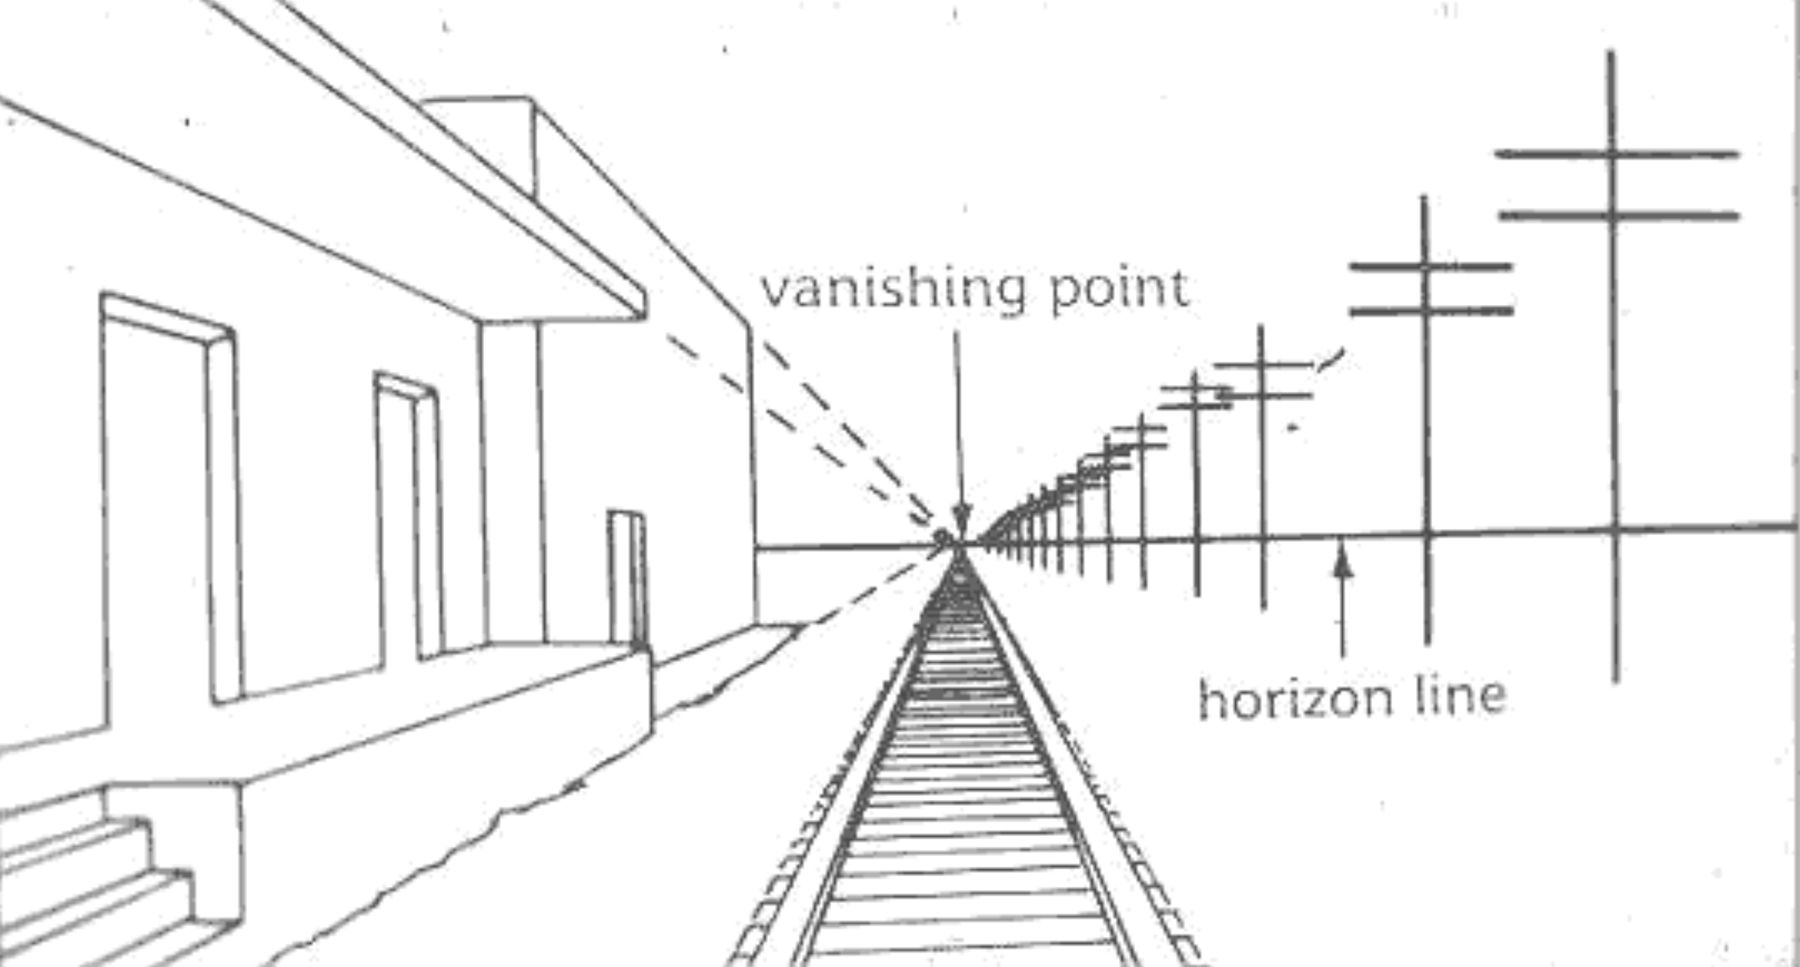 Linear Perspective Lines And Vanishing Points Used To